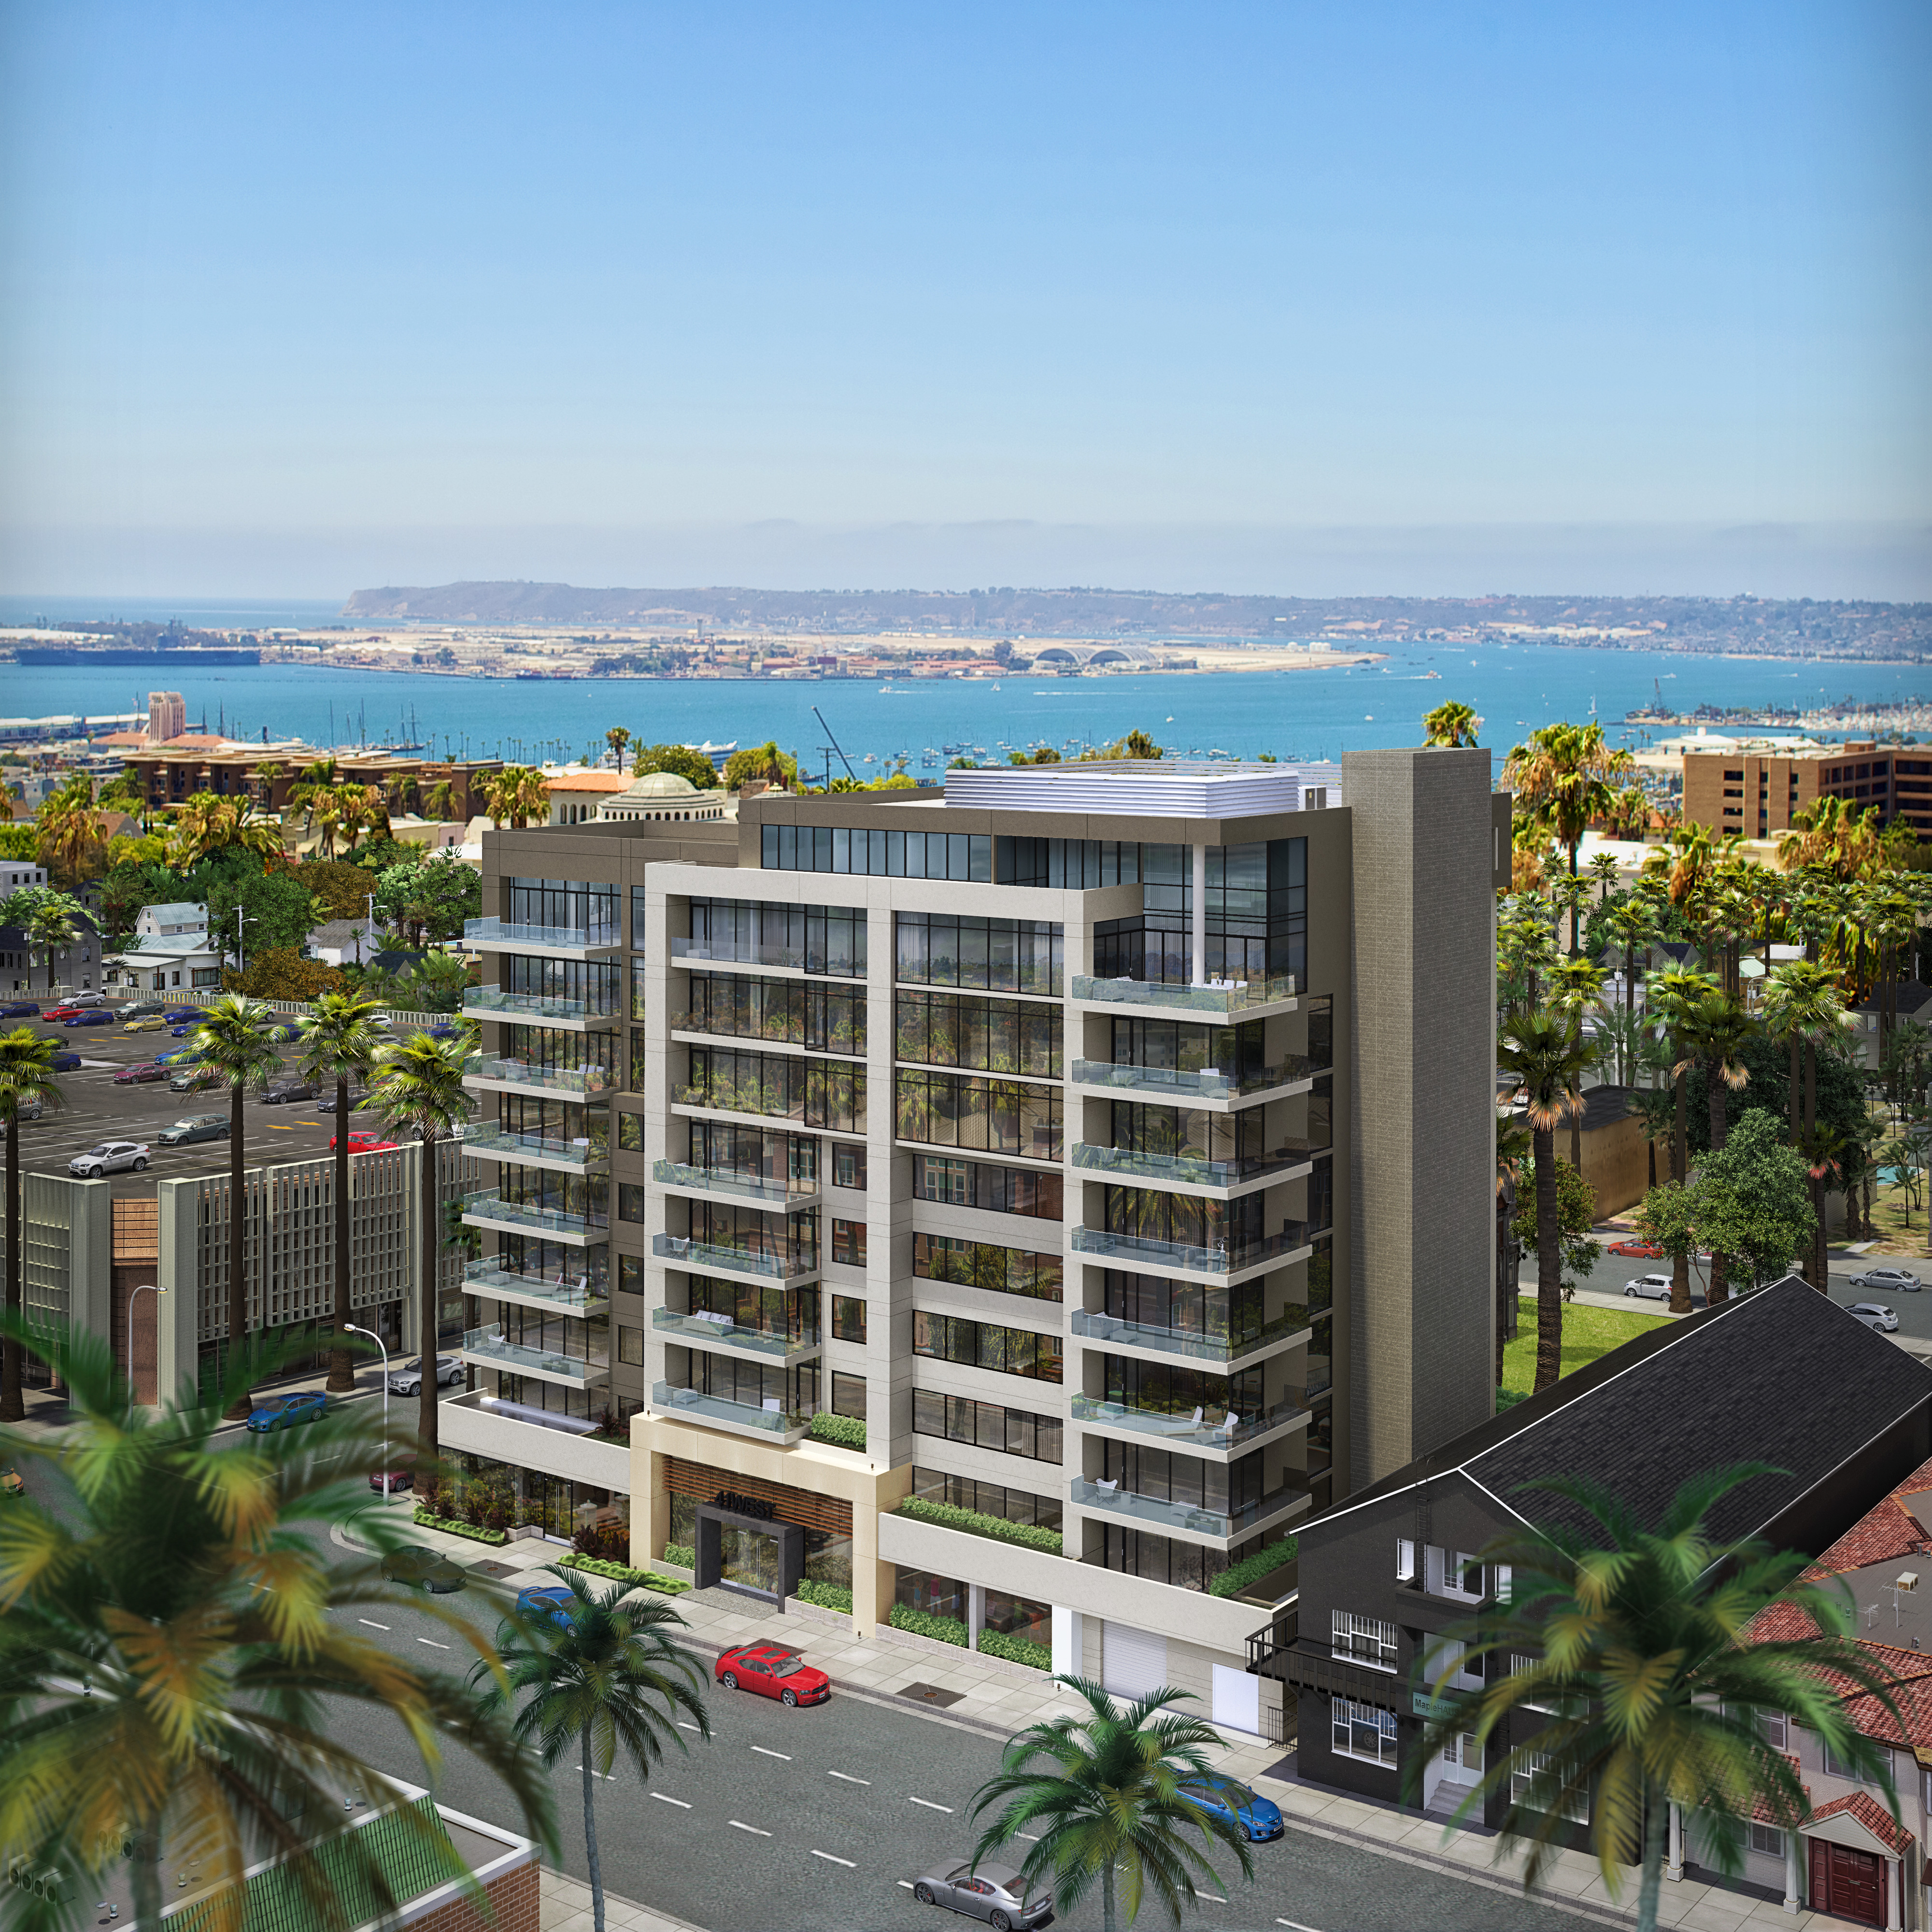 Luxury condos in Bankers Hill San Diego with ocean views